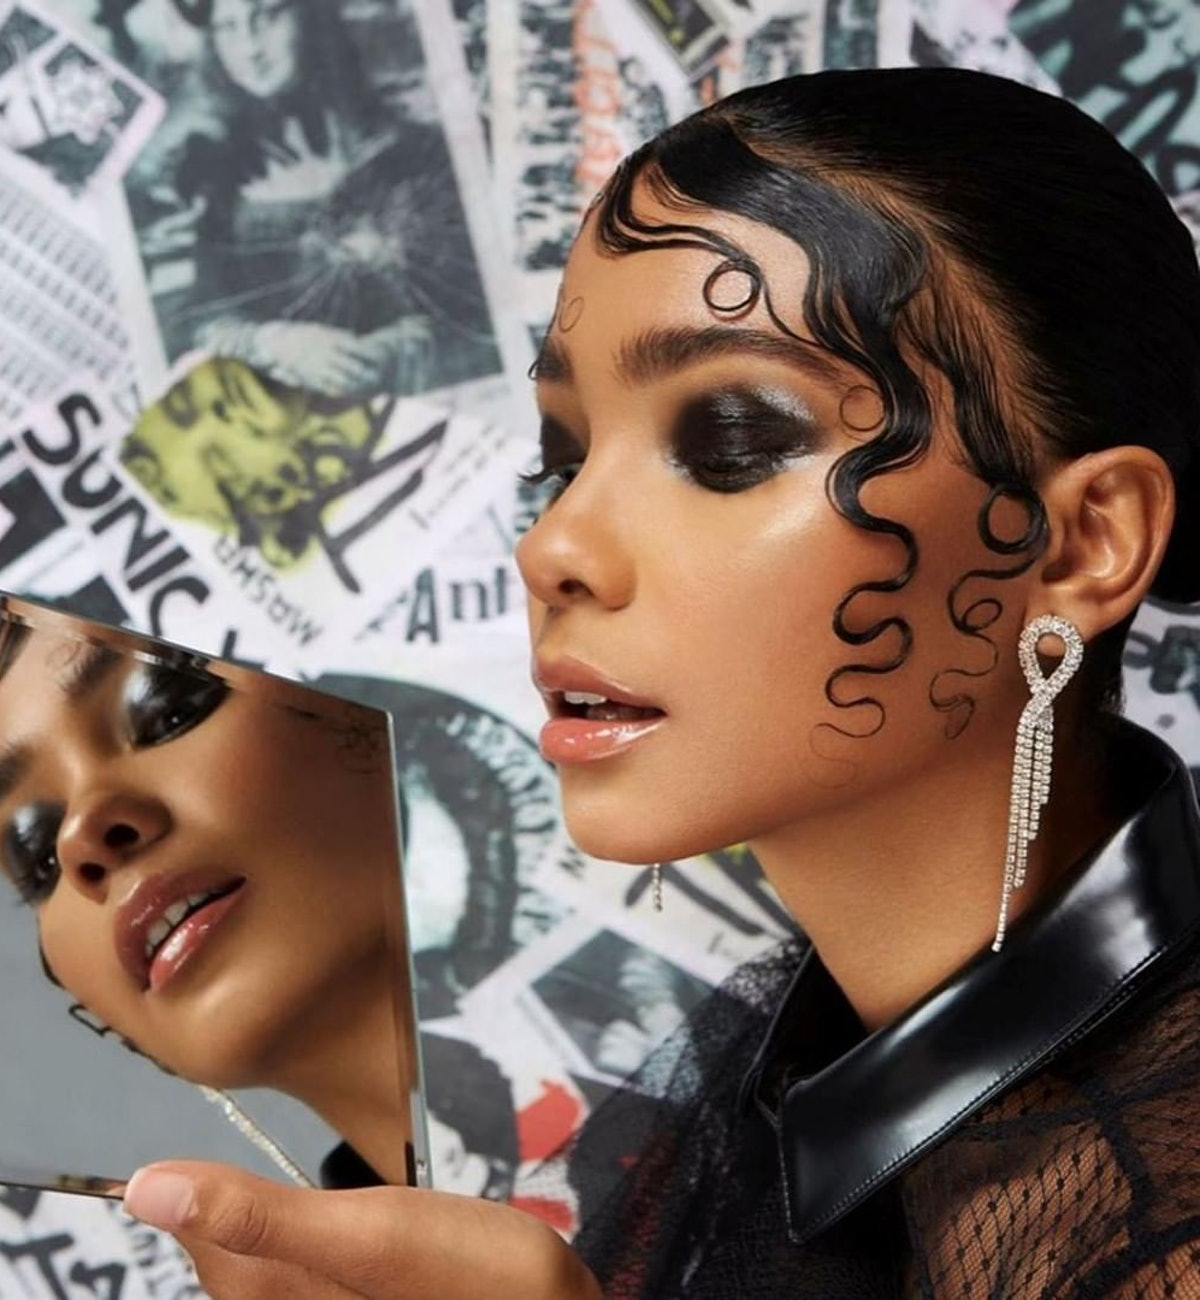 Got2be model with dark eye makeup and artful edges.